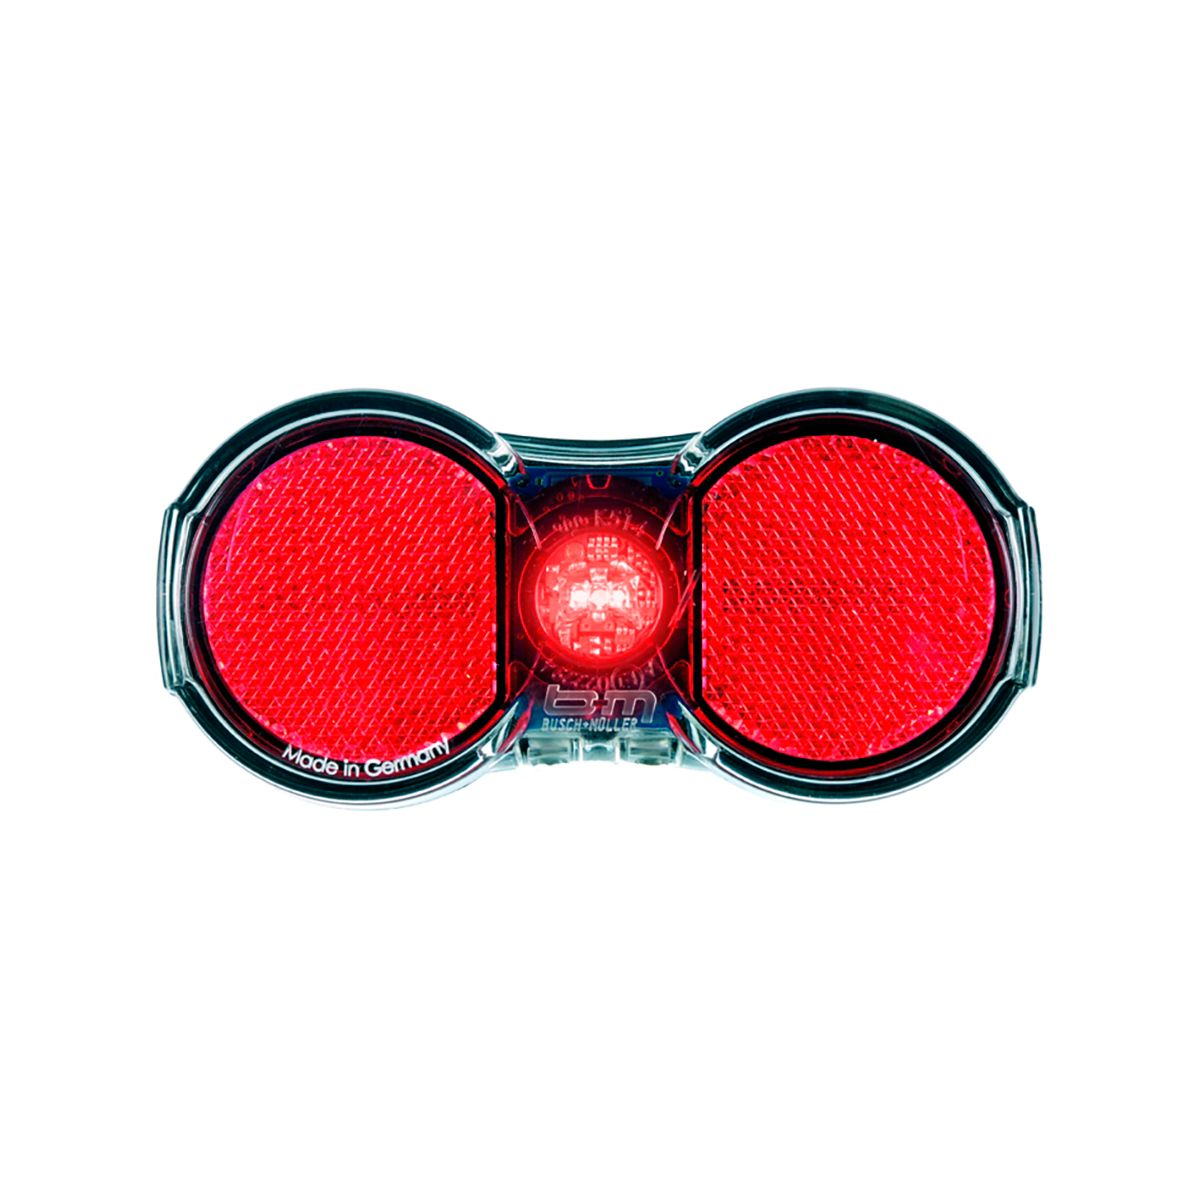 Toplight Flat Plus Dynamo-Powered Rear Light